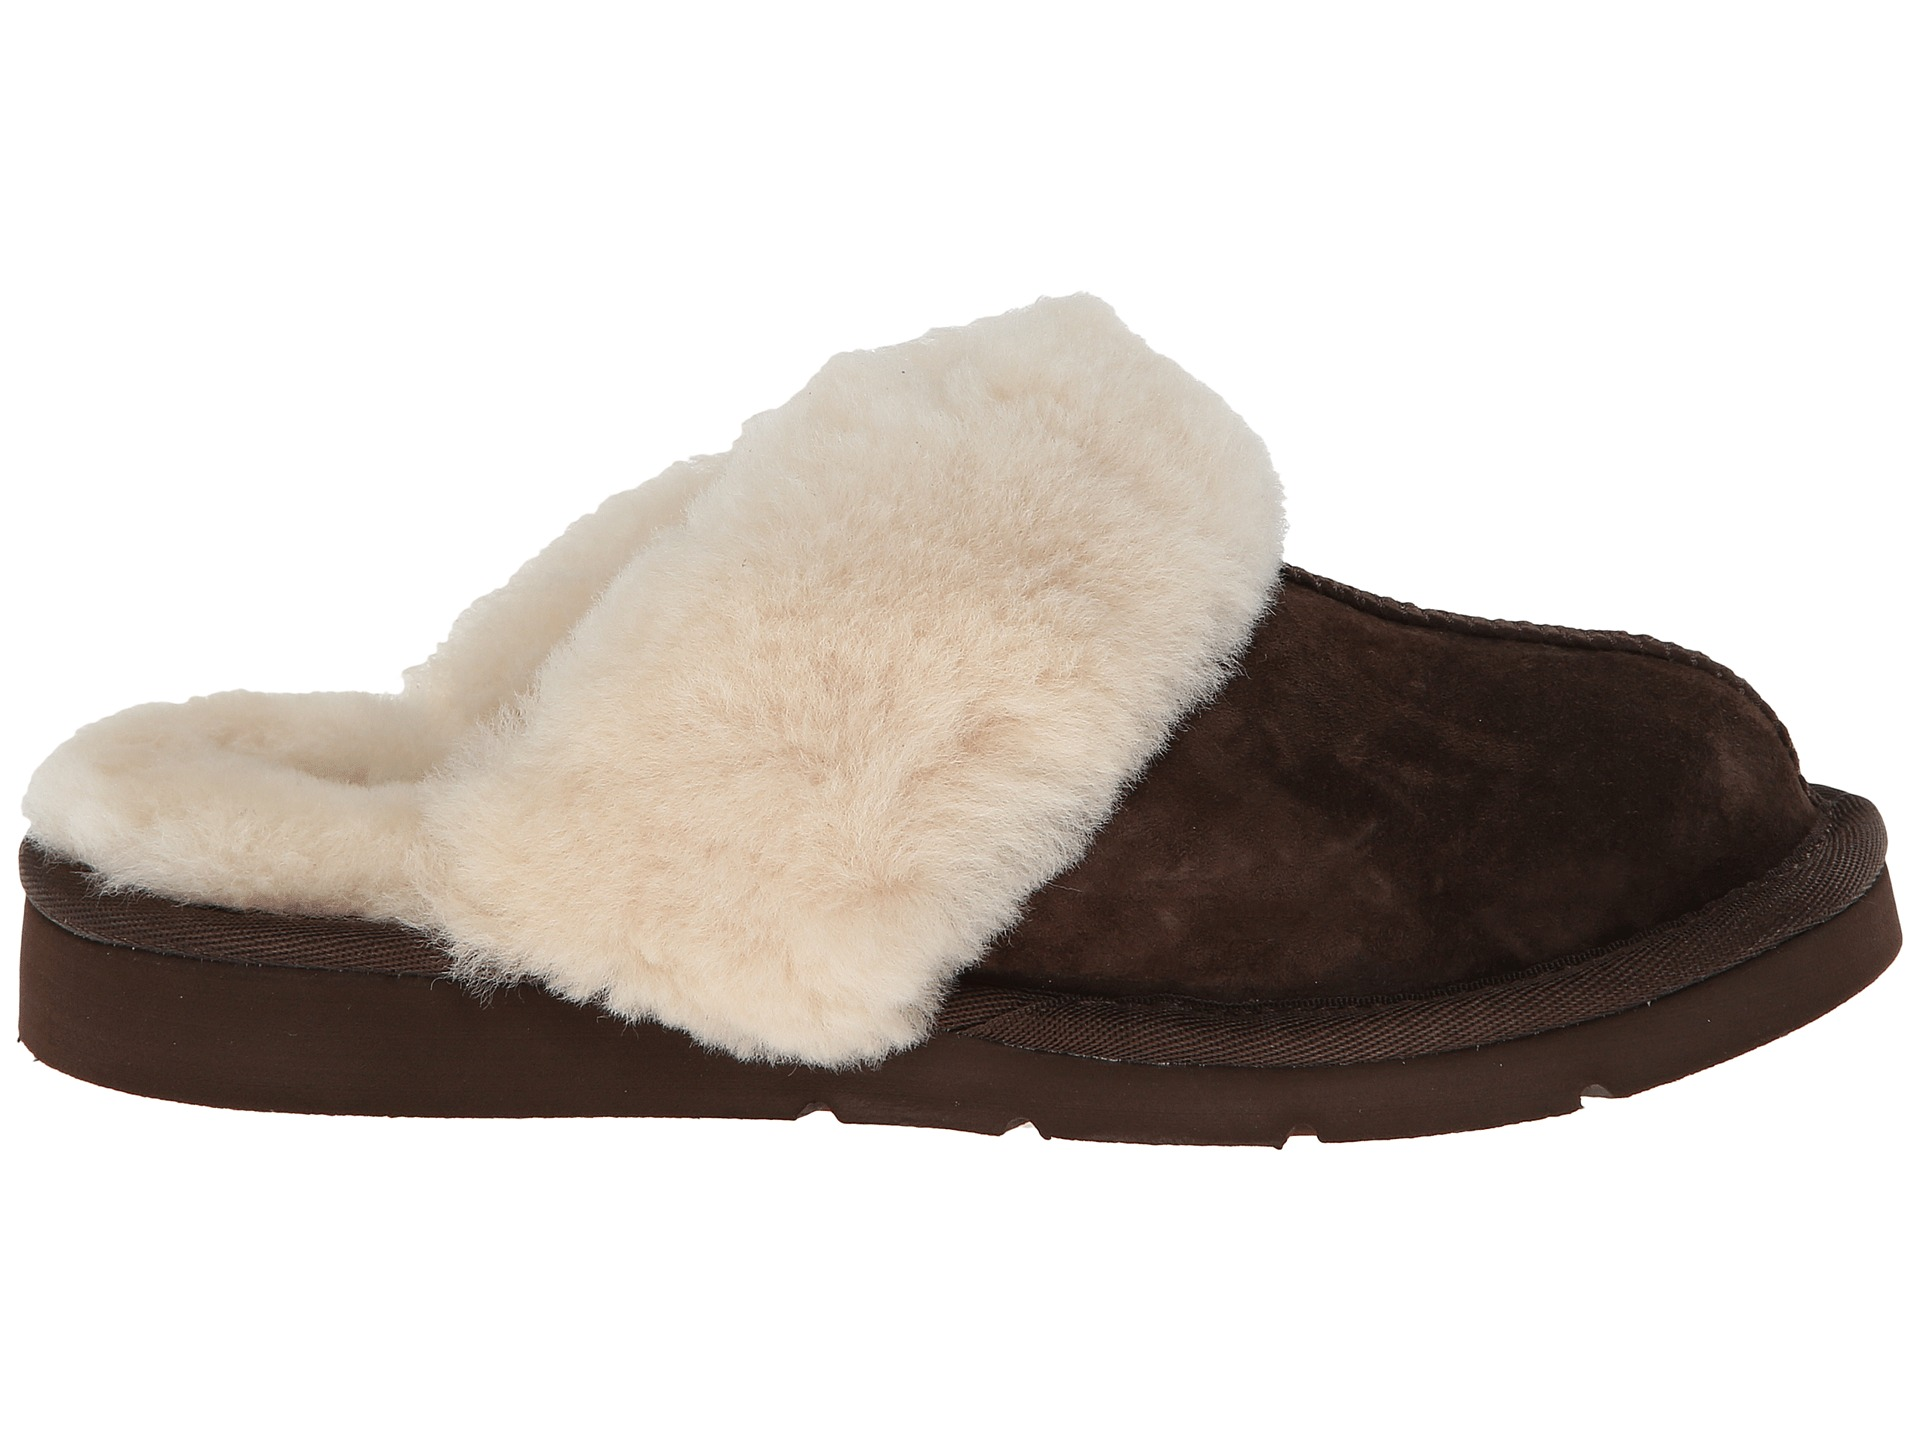 670a6e902 Cozy Ii Ugg Slippers - cheap watches mgc-gas.com